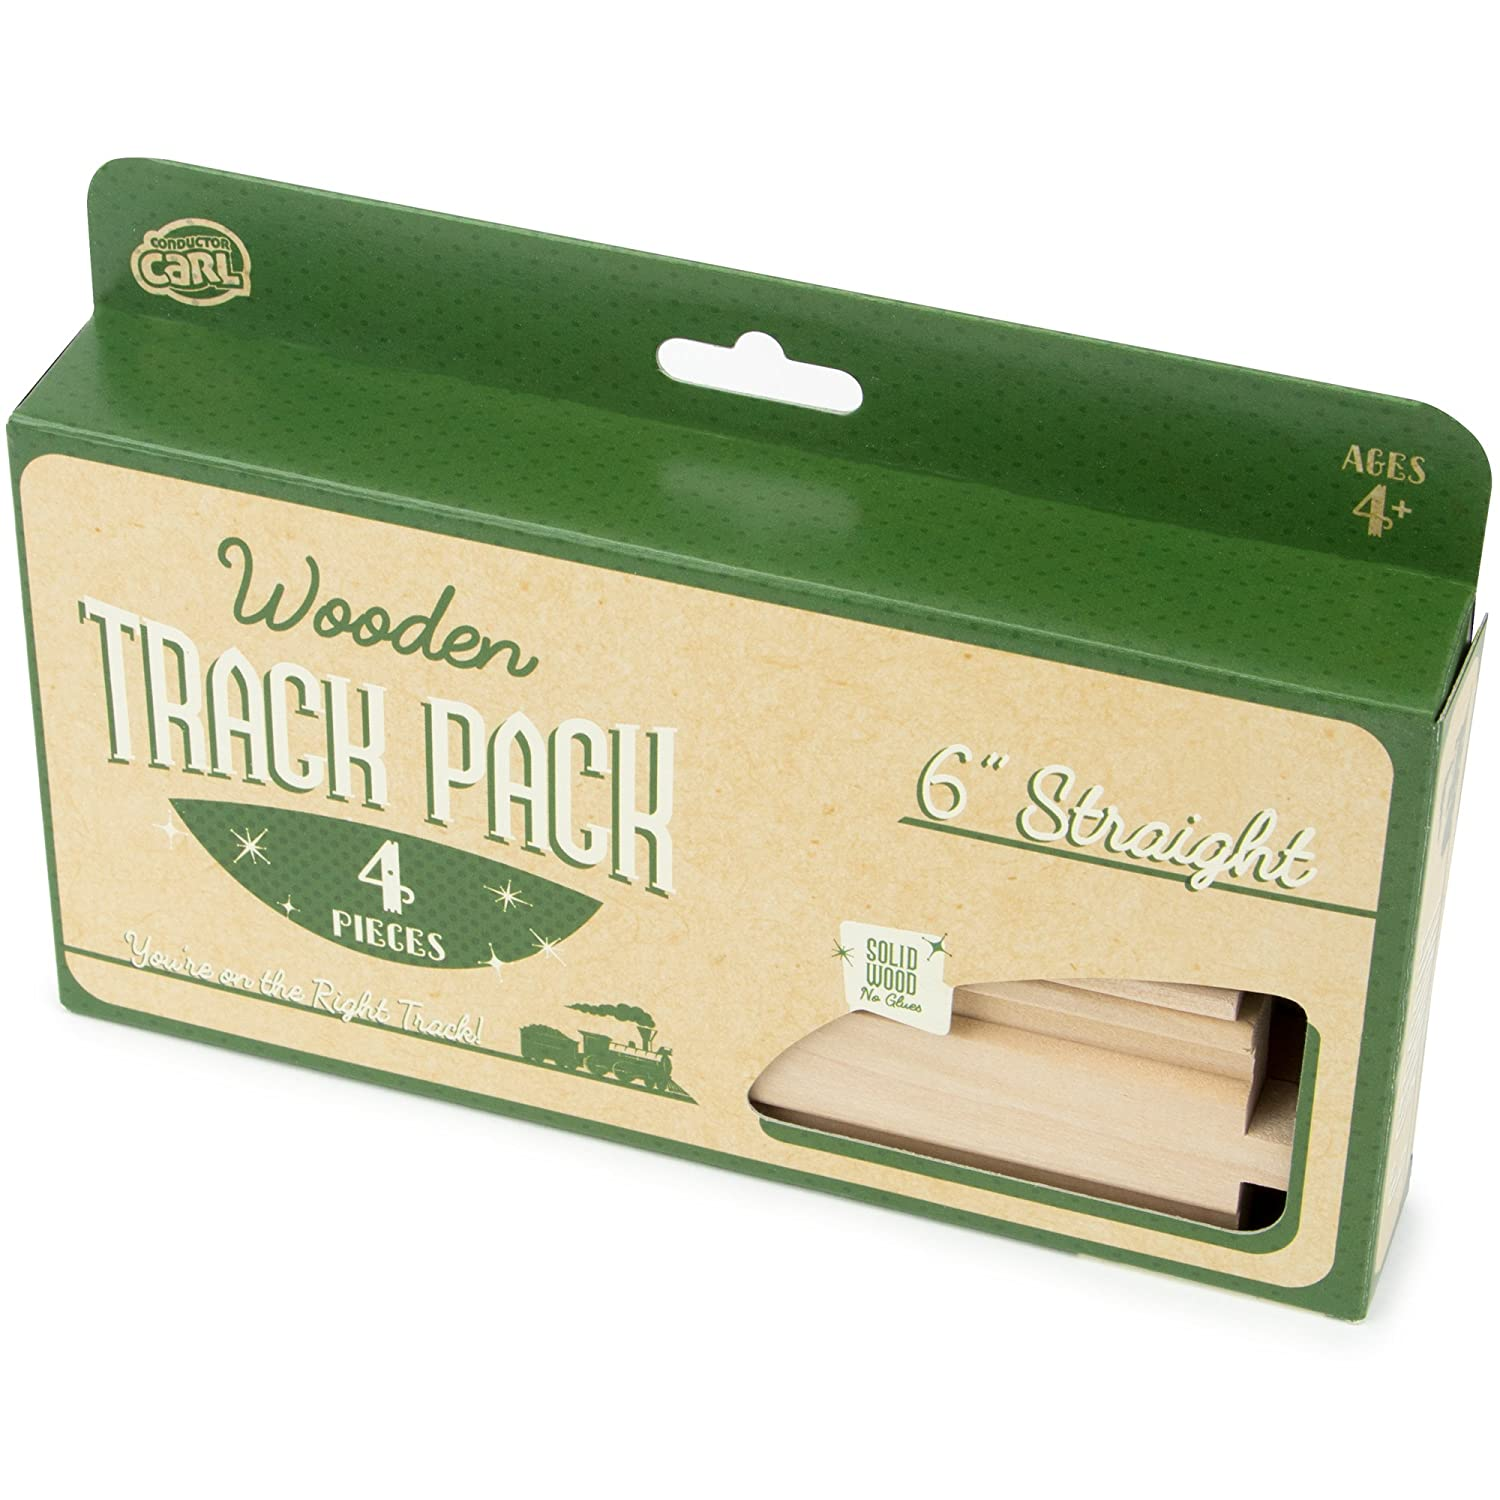 4-piece 6 Straight Wooden Train Track Value Booster Pack Compatible with All Major Toy Train Brands by Conductor Carl